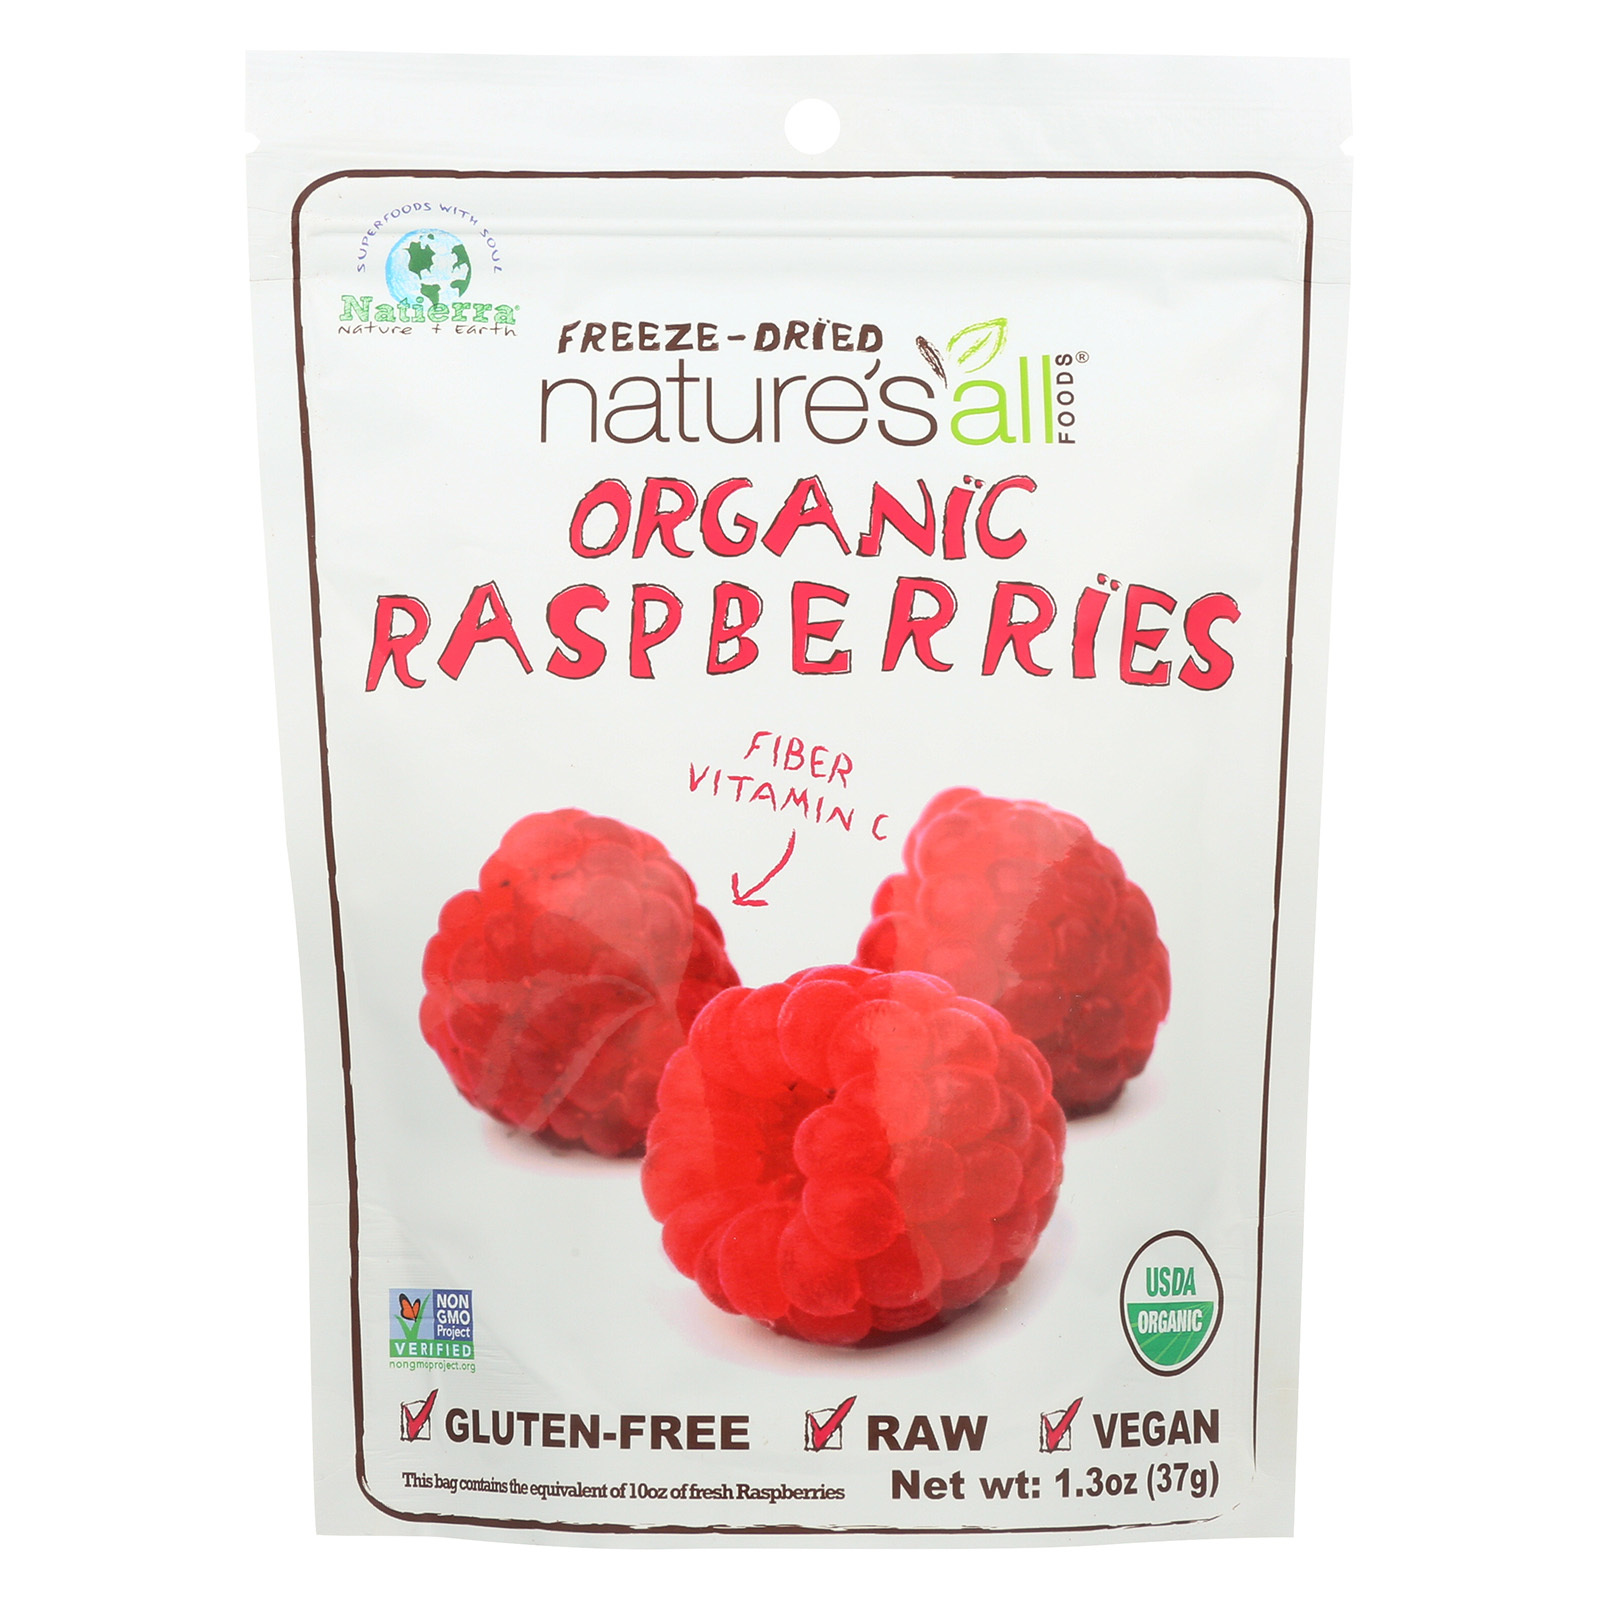 Natierra Freeze Dried - Raspberries - Case of 12 - 1.3 oz.